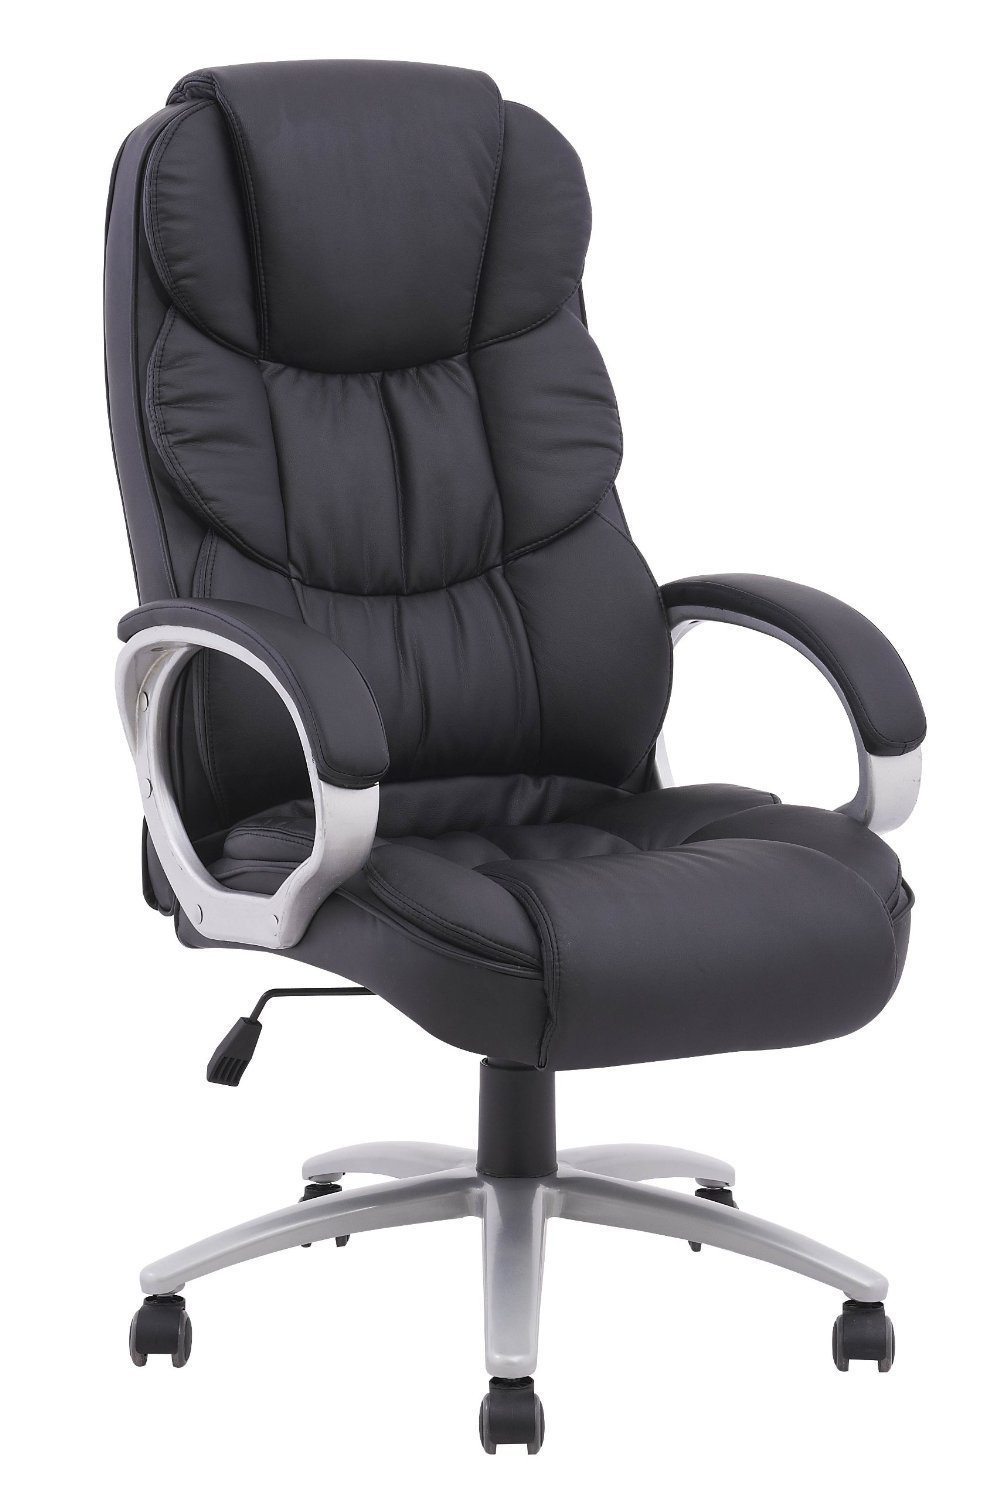 Top 10 Best Most Popular Ergonomic Office Chairs In 2018